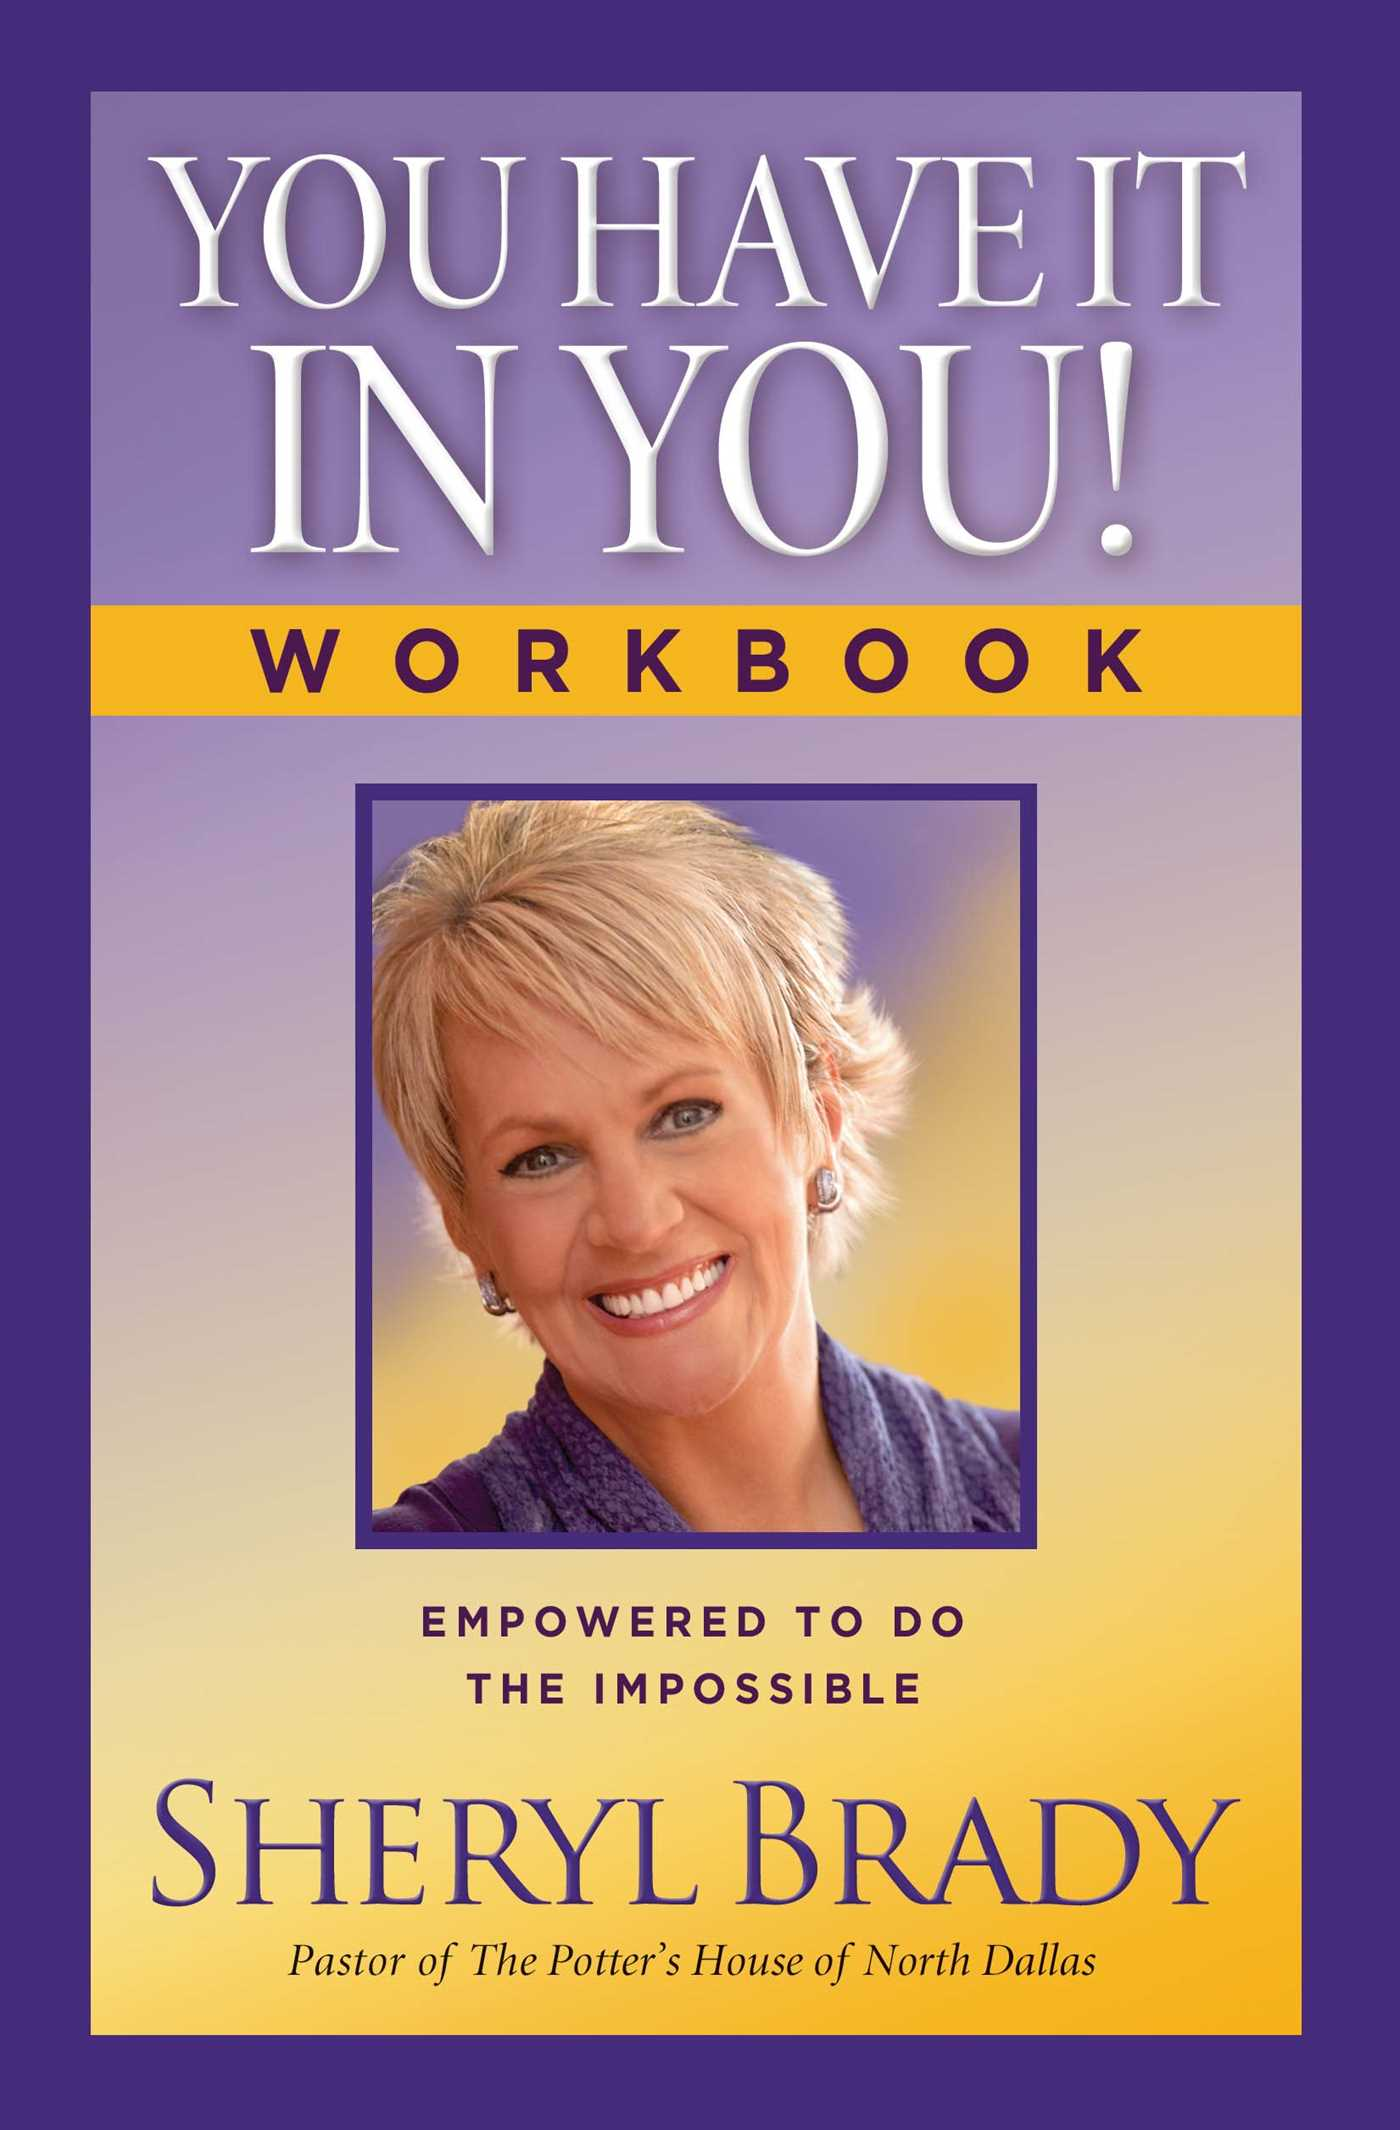 You have it in you workbook 9781476757537 hr